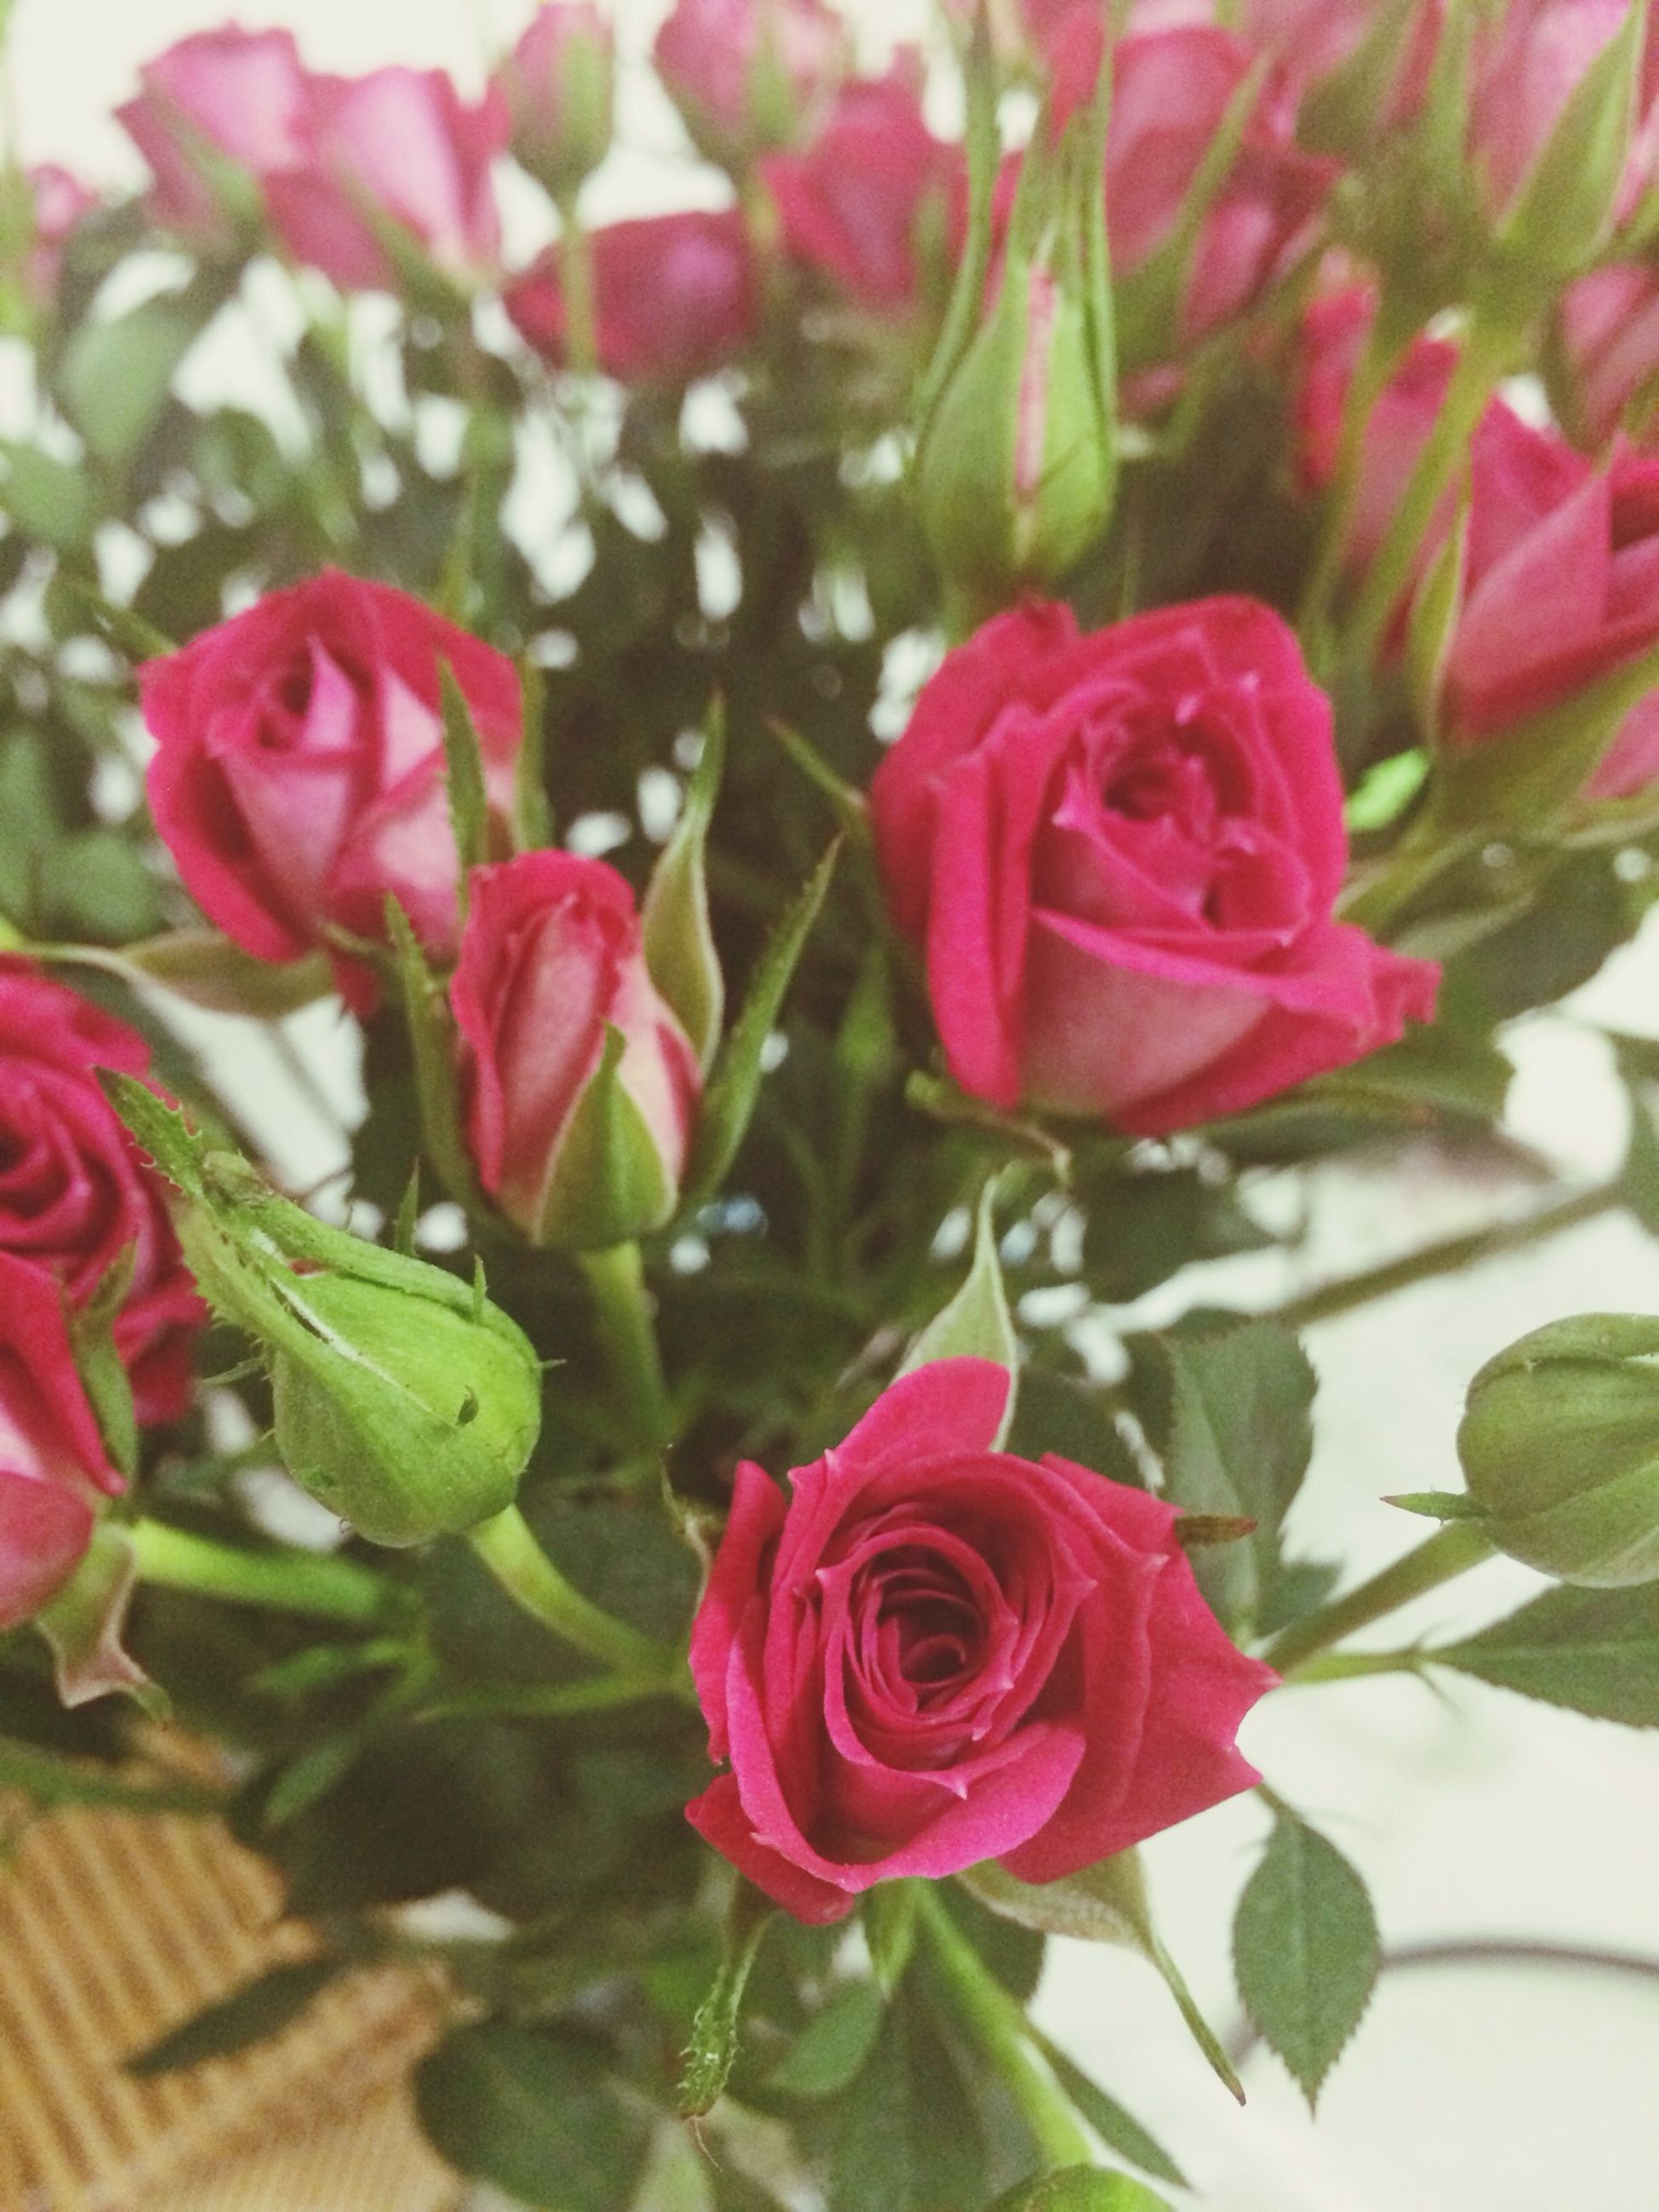 flower, petal, freshness, fragility, pink color, flower head, rose - flower, beauty in nature, growth, close-up, nature, leaf, blooming, plant, focus on foreground, red, rose, pink, indoors, day